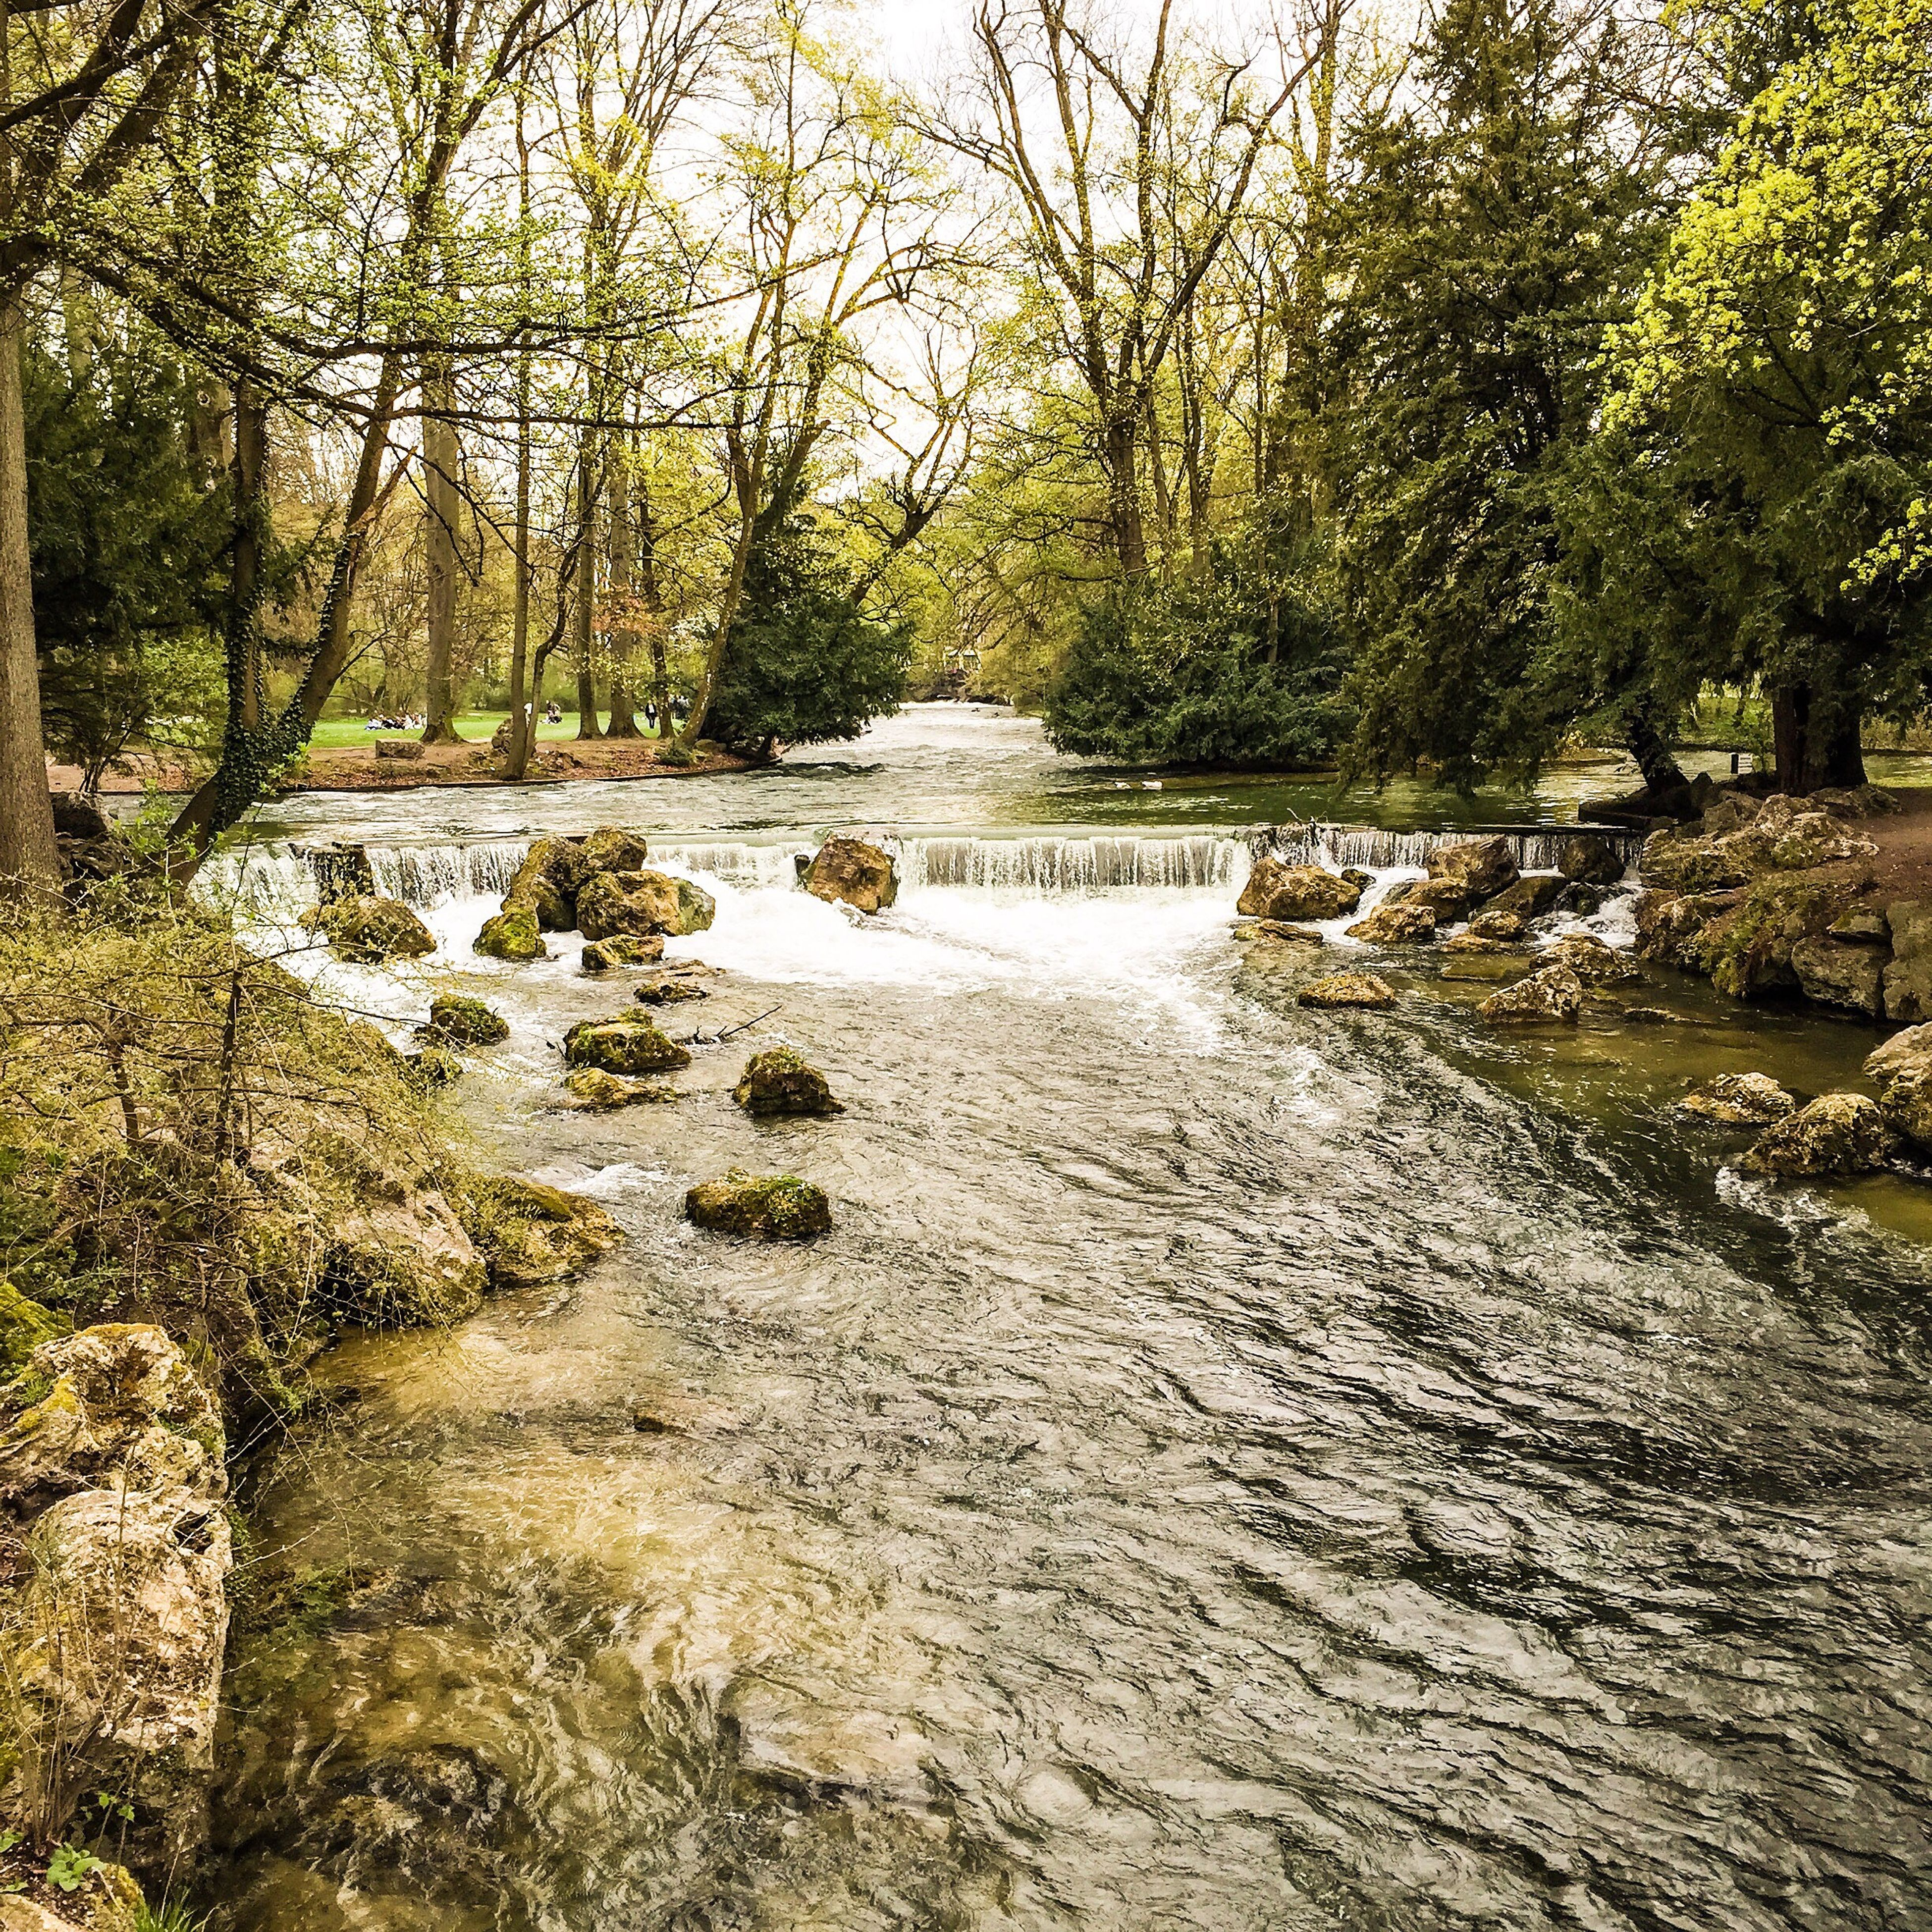 water, tree, tranquility, nature, beauty in nature, tranquil scene, scenics, stream, forest, flowing water, river, flowing, rock - object, growth, idyllic, day, non-urban scene, waterfront, outdoors, no people